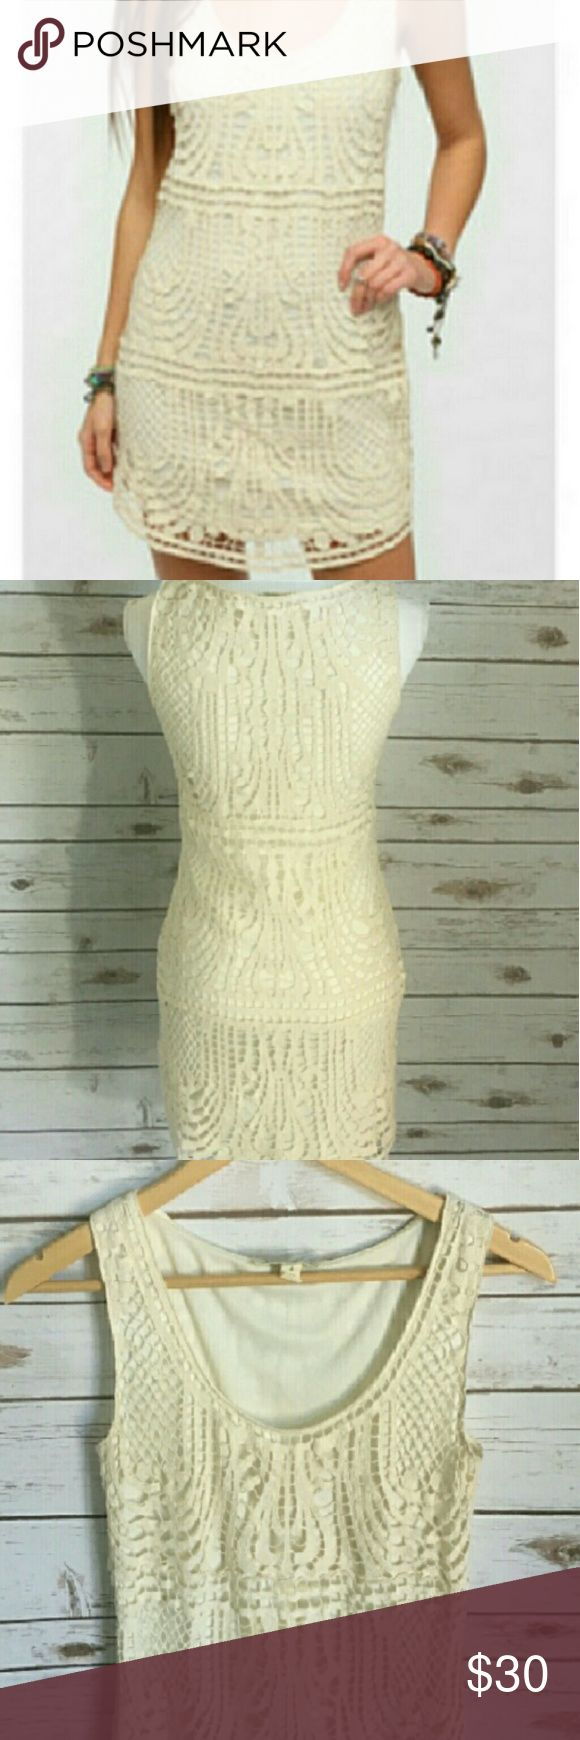 """Staring at Stars (Urban Outfitters) Crochet Dress Like new condition! Never worn! Cream in color. Cute for everyday wear or perfect for a festival. 14"""" waist, 16"""" bust and 33"""" length. Bundle to save big! Urban Outfitters Dresses Mini"""